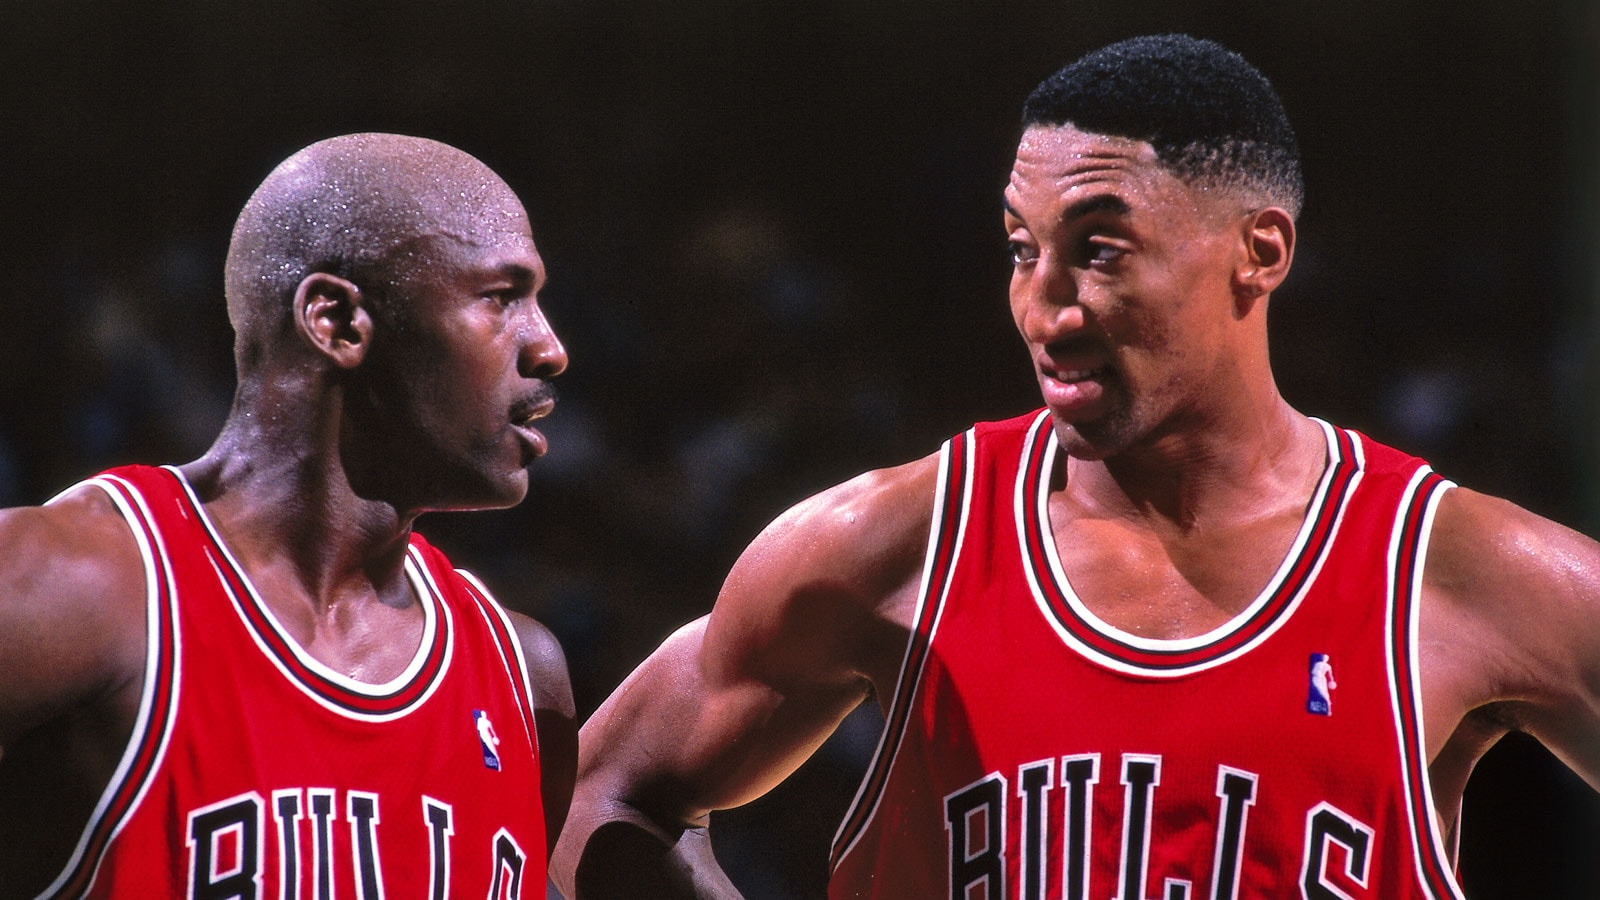 Scottie Pippen huddles with Michael Jordan in a 1998 game against the Charlotte Hornets